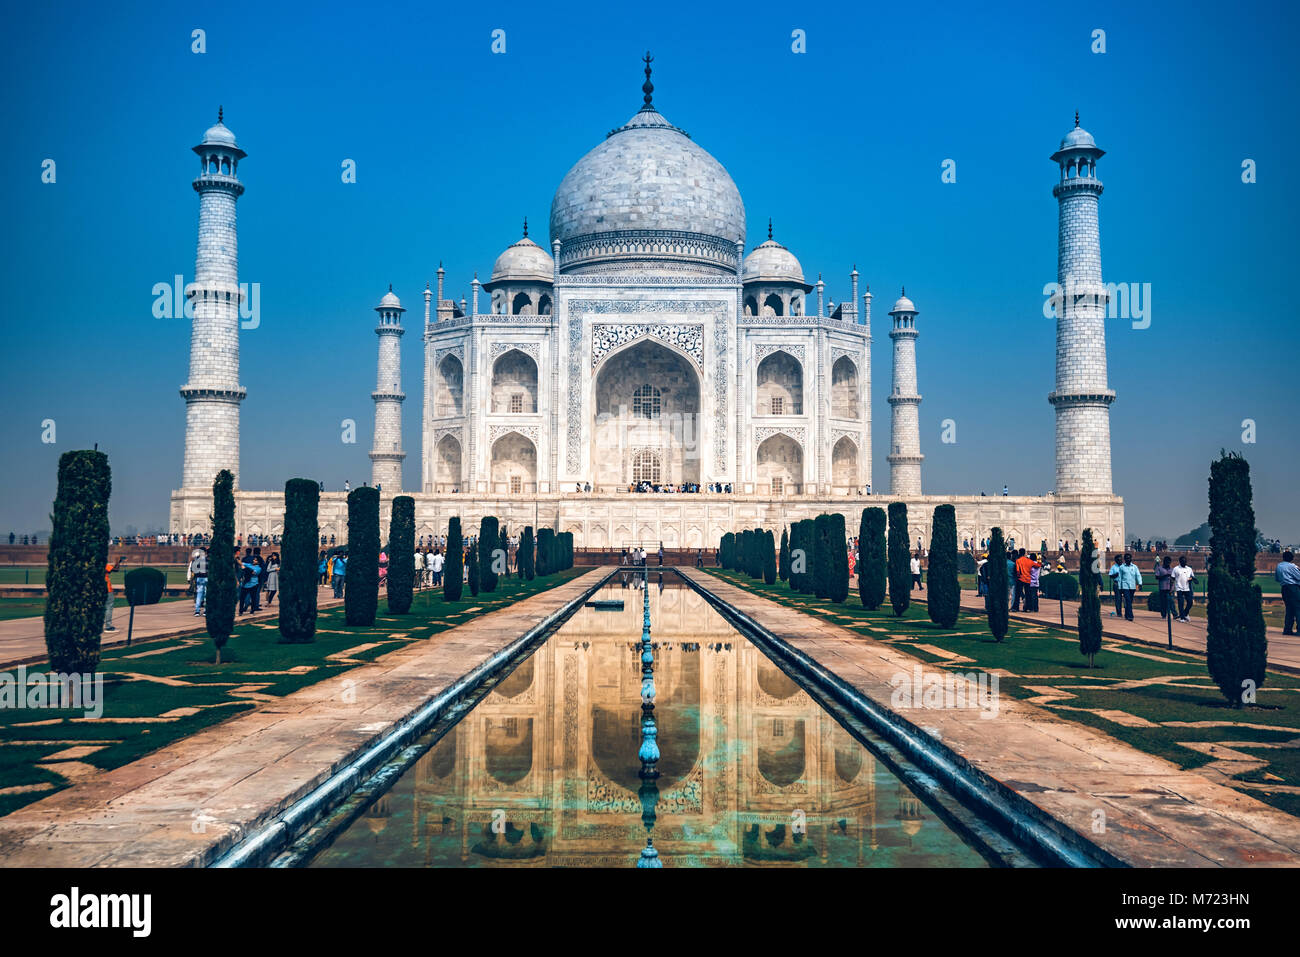 AGRA, INDIA - NOVEMBER 8, 2017: Taj Mahal scenic view in Agra, India. - Stock Image